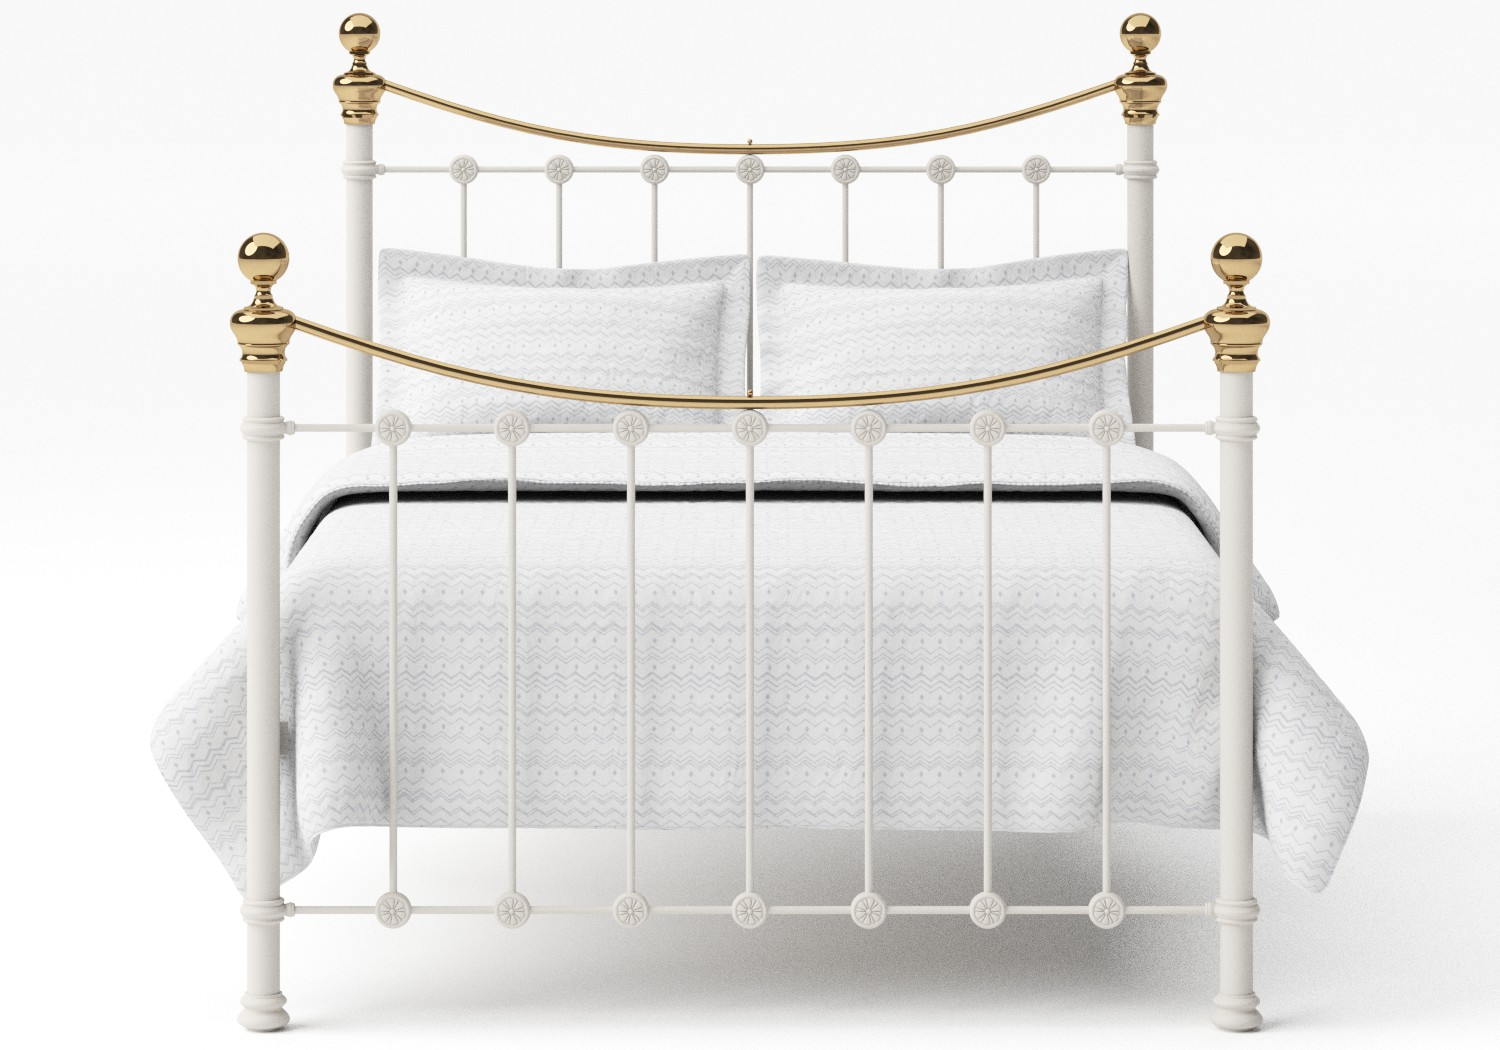 Selkirk Iron/Metal Bed in Glossy Ivory with Brass details